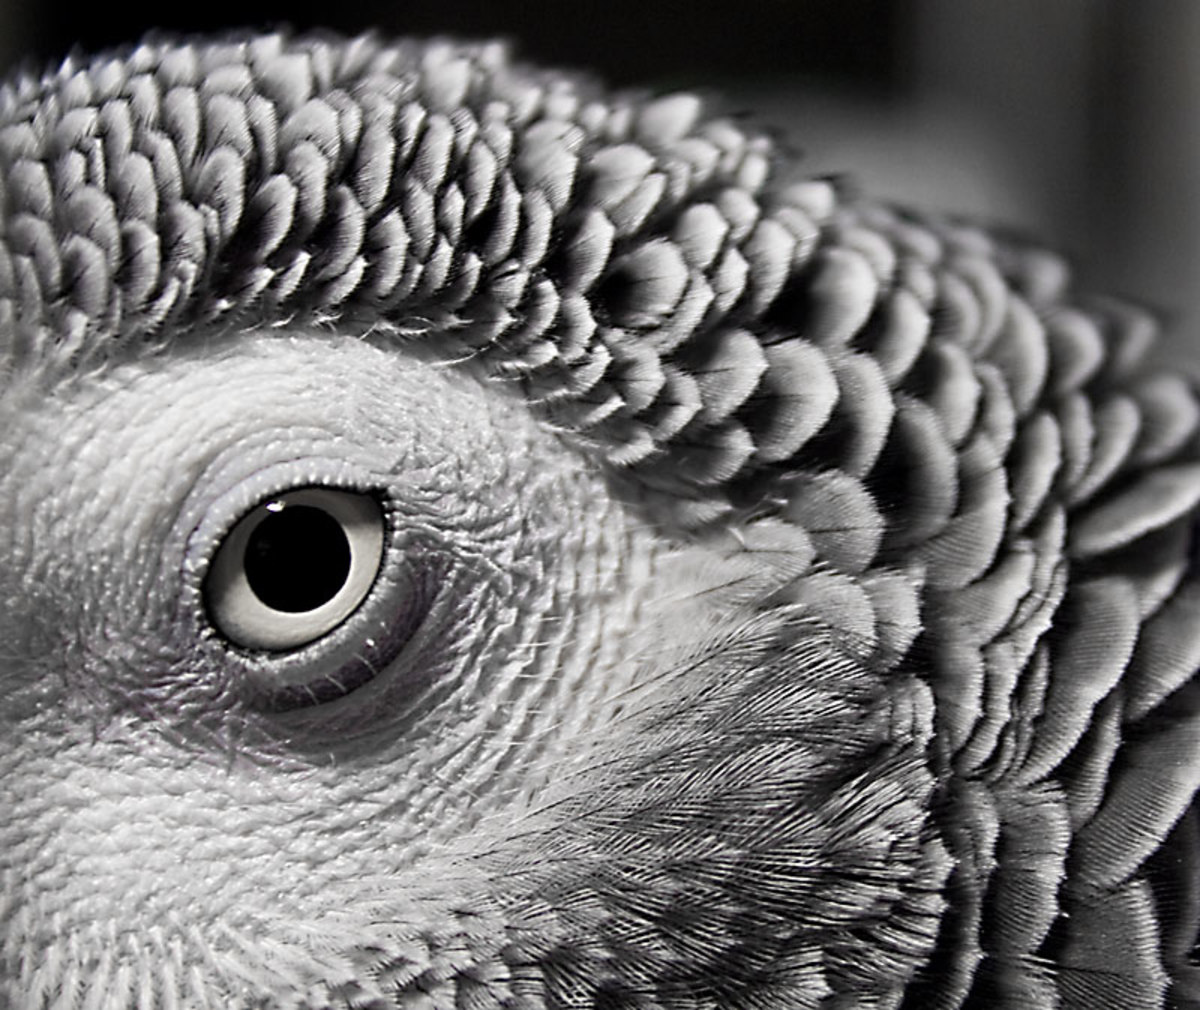 This African Grey Parrot's beauty is enhanced through the use of macrophotography.